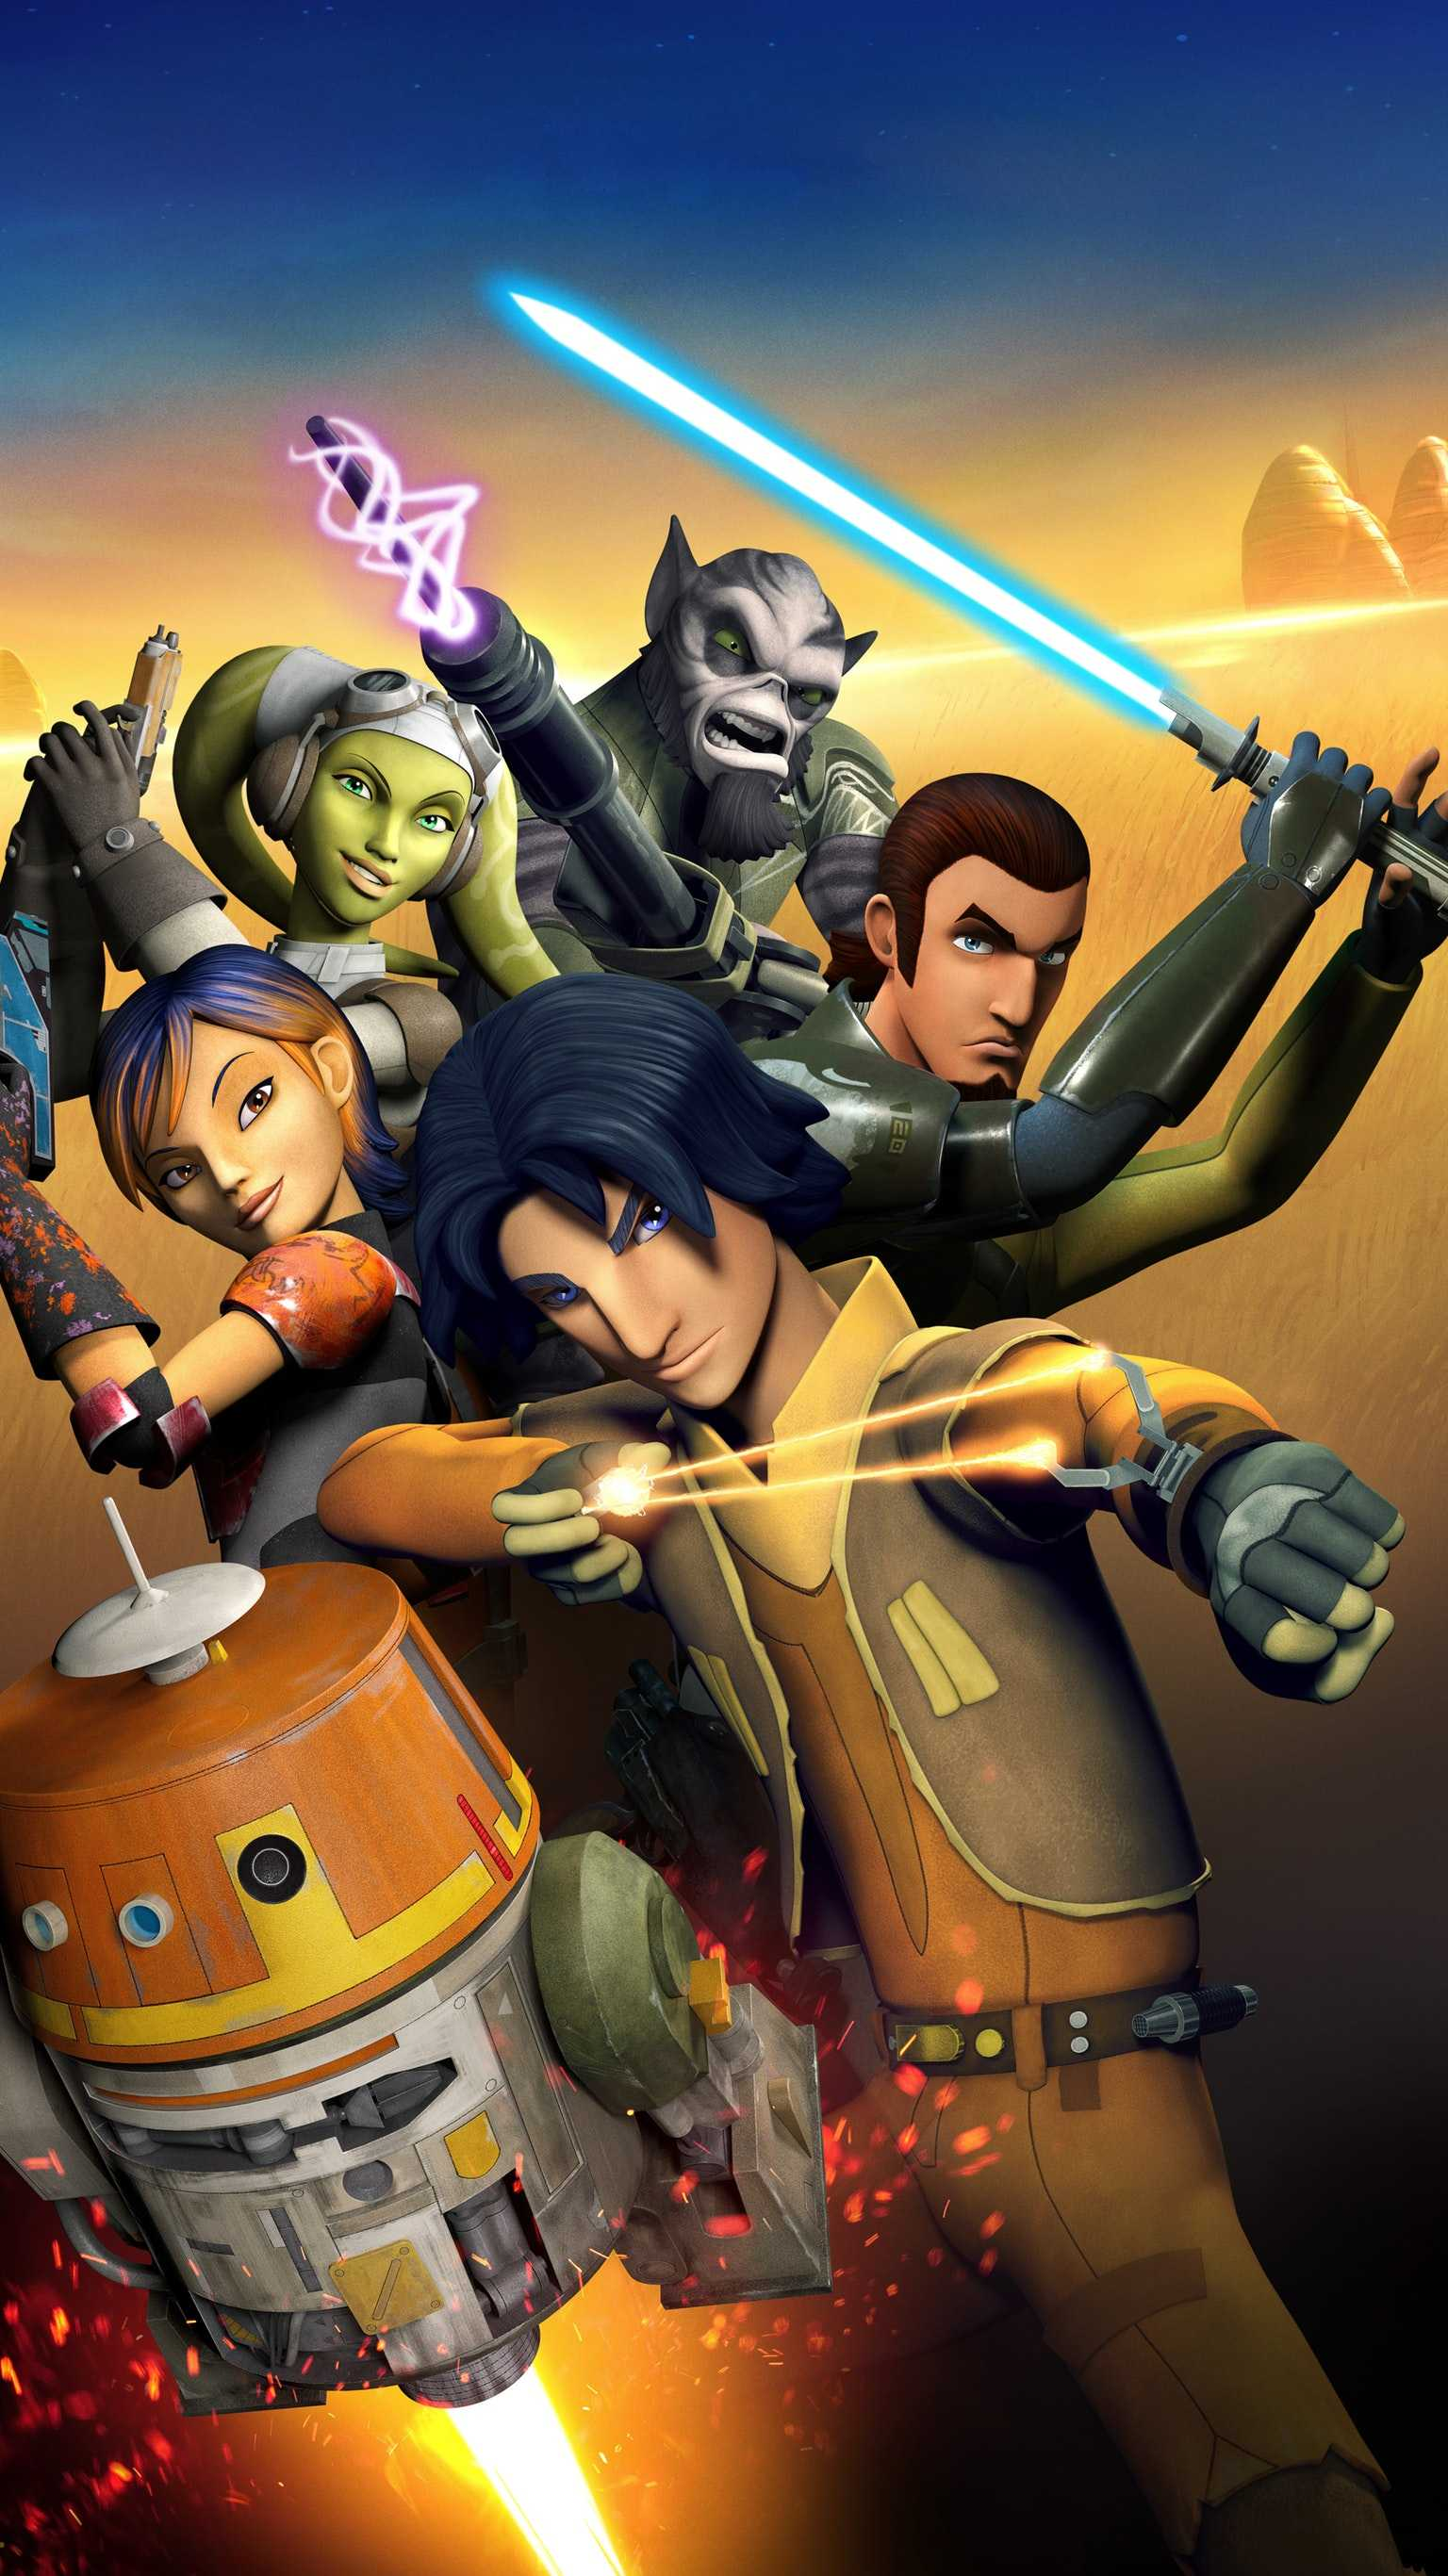 Star Wars Rebels Wallpapers Posted By Michelle Sellers